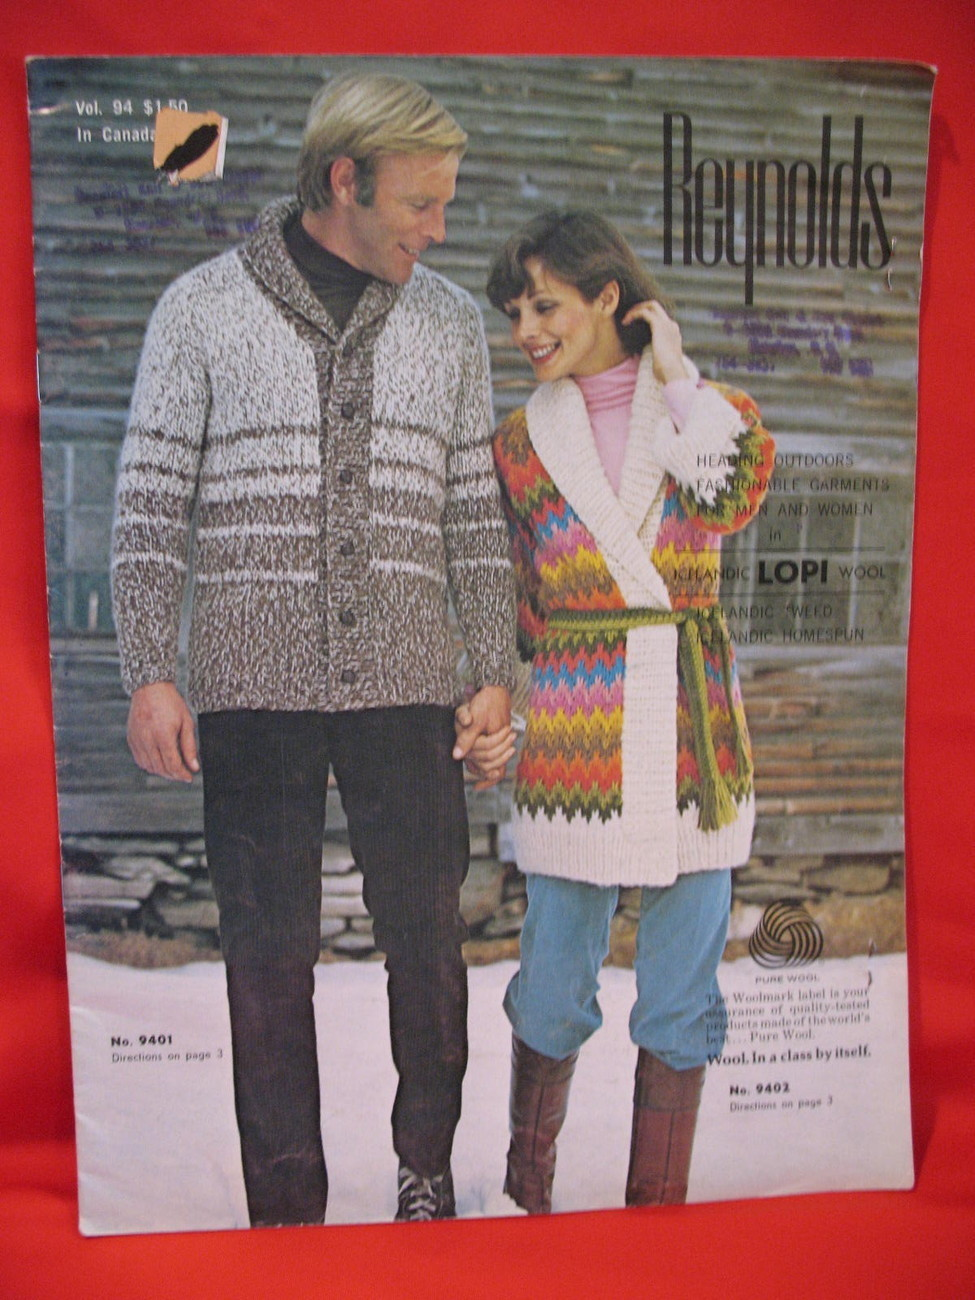 Reynolds Lopi Wool Sweater Wrap Jacket Knitting Pattern etc